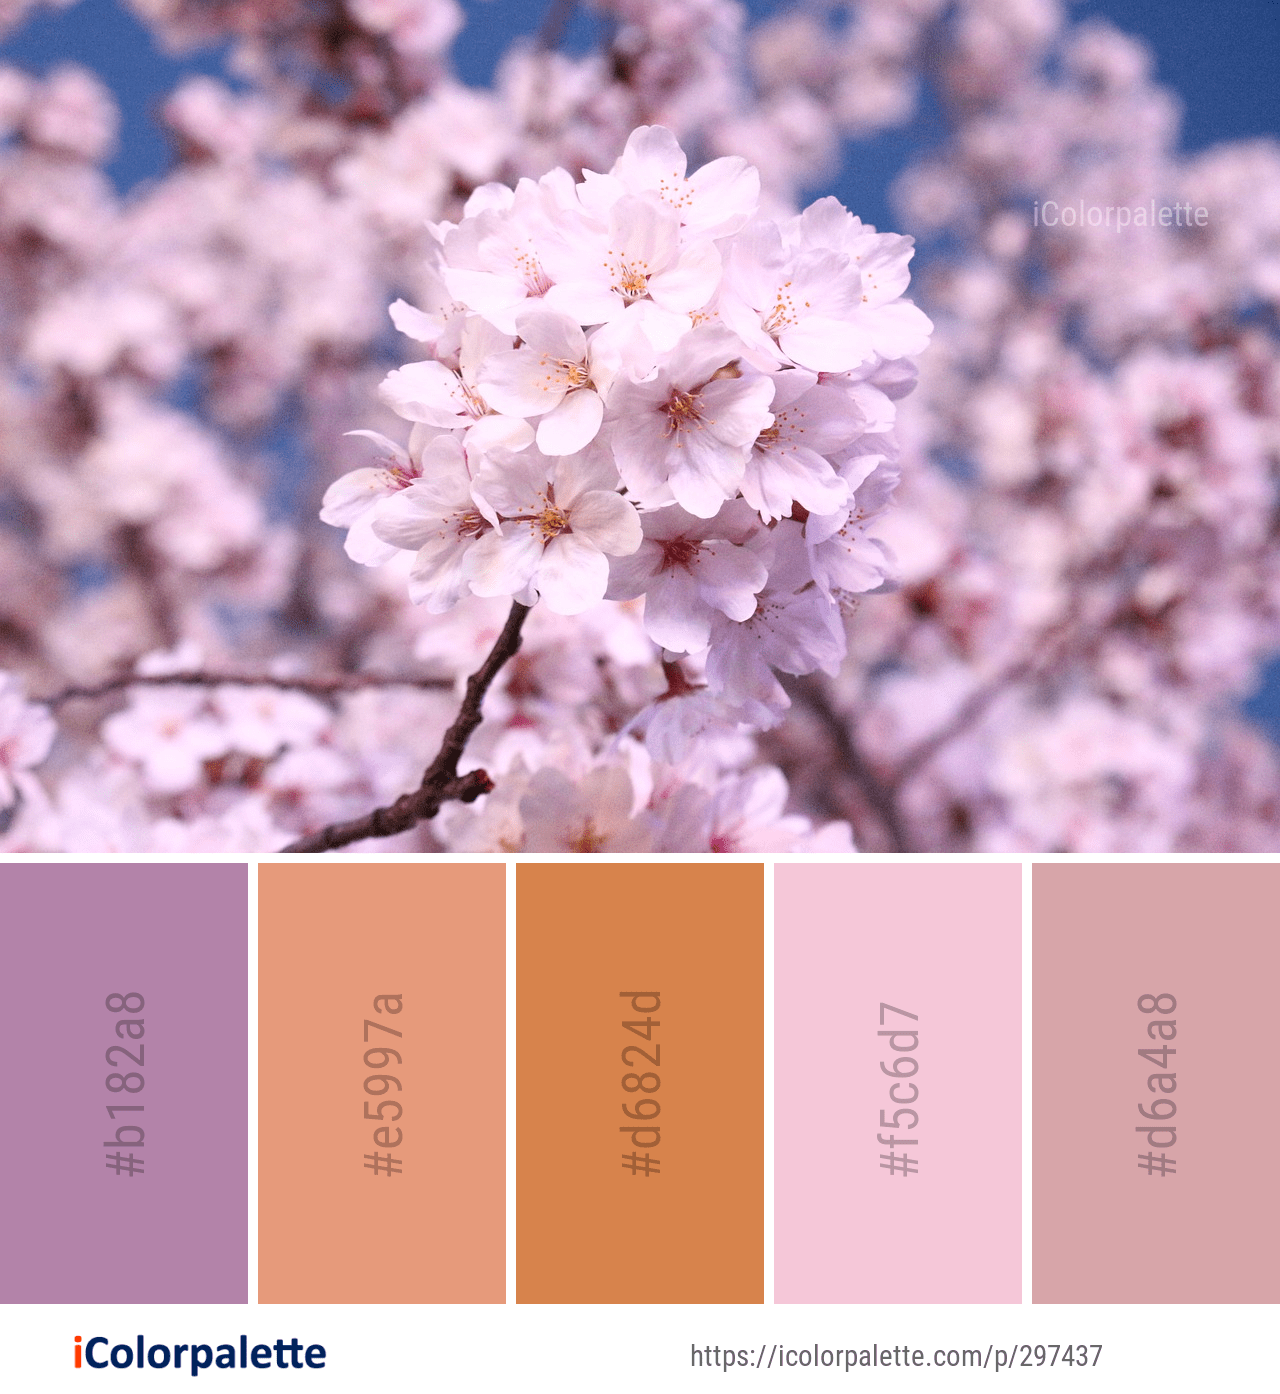 Color Palette Ideas From 1804 Blossom Images Icolorpalette Color Palette Color Color Mixing